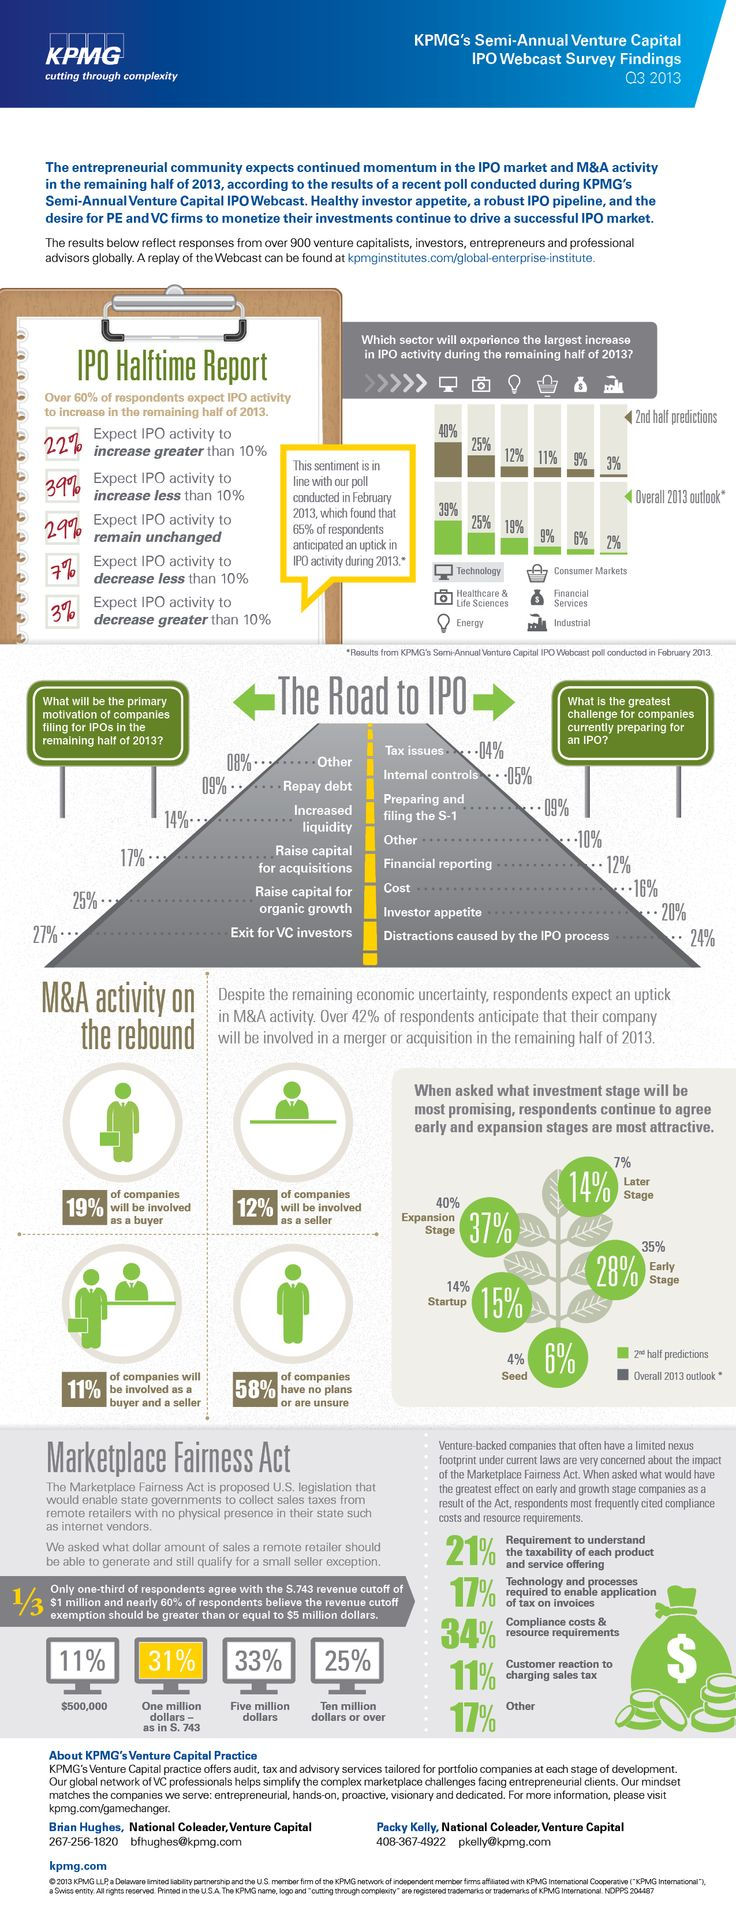 Kpmg u s s semi annual ipo webcast survey findings q3 2013 infographic